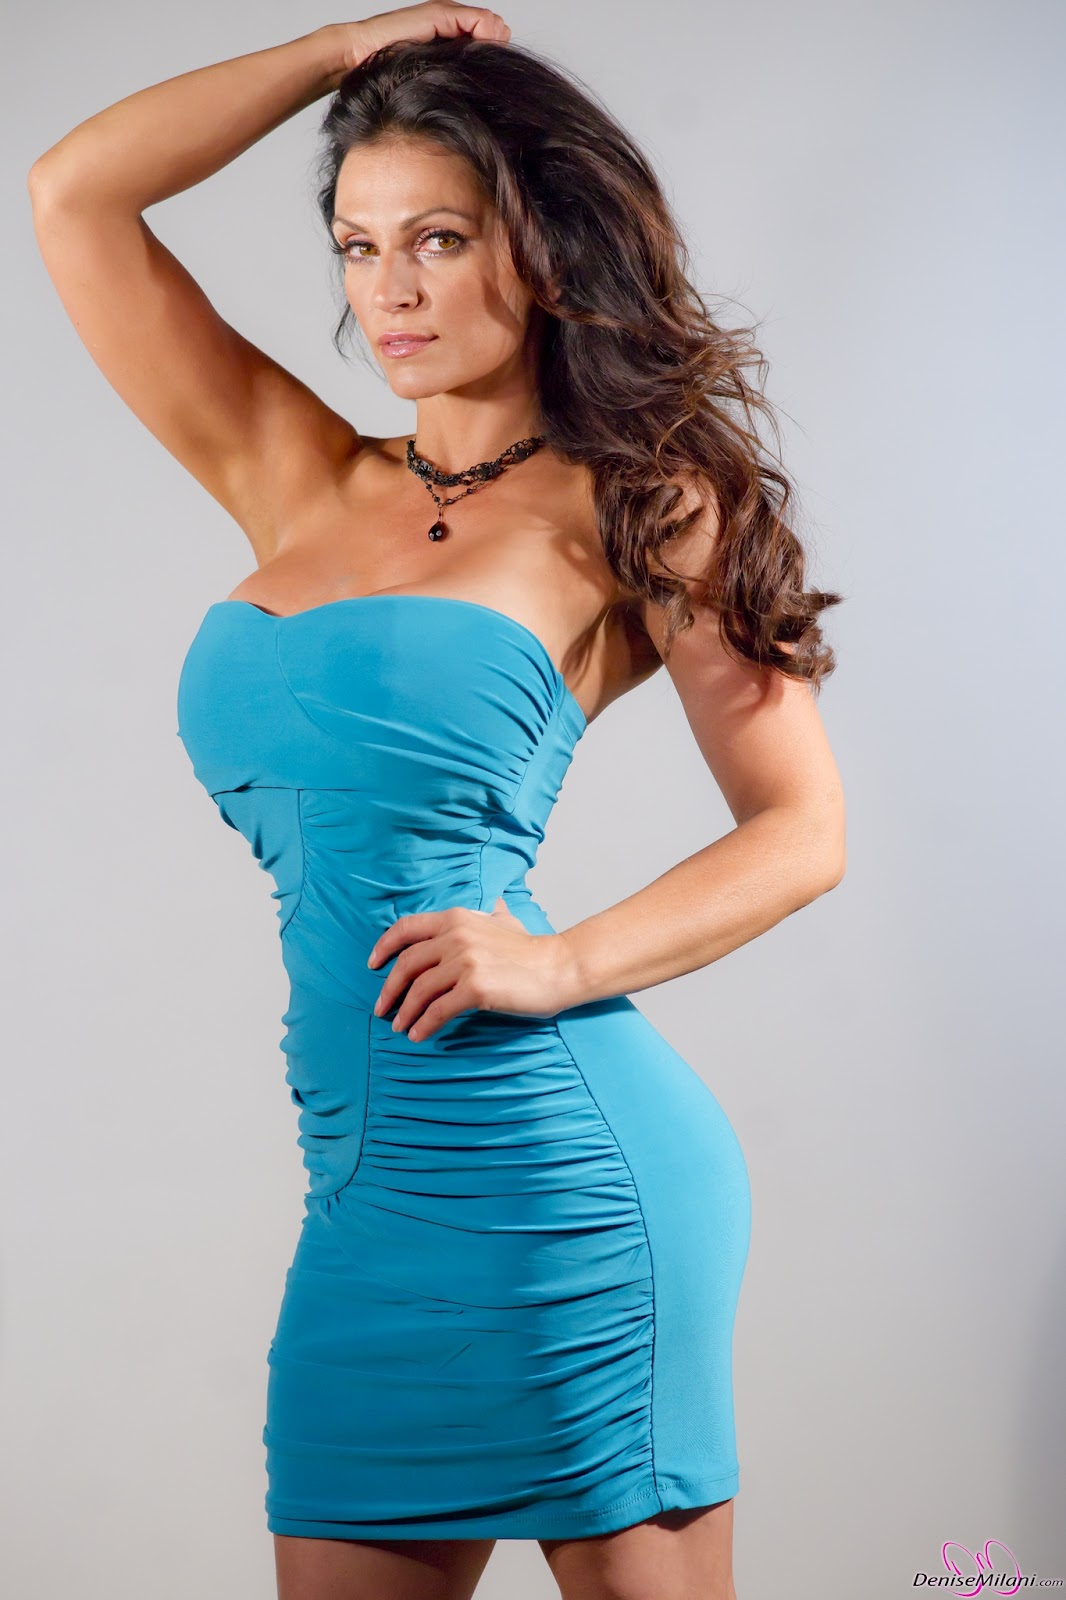 A Denise Milani Image Blog: Denise Milani New Blue Dress ... Denise Milani Blue Dress